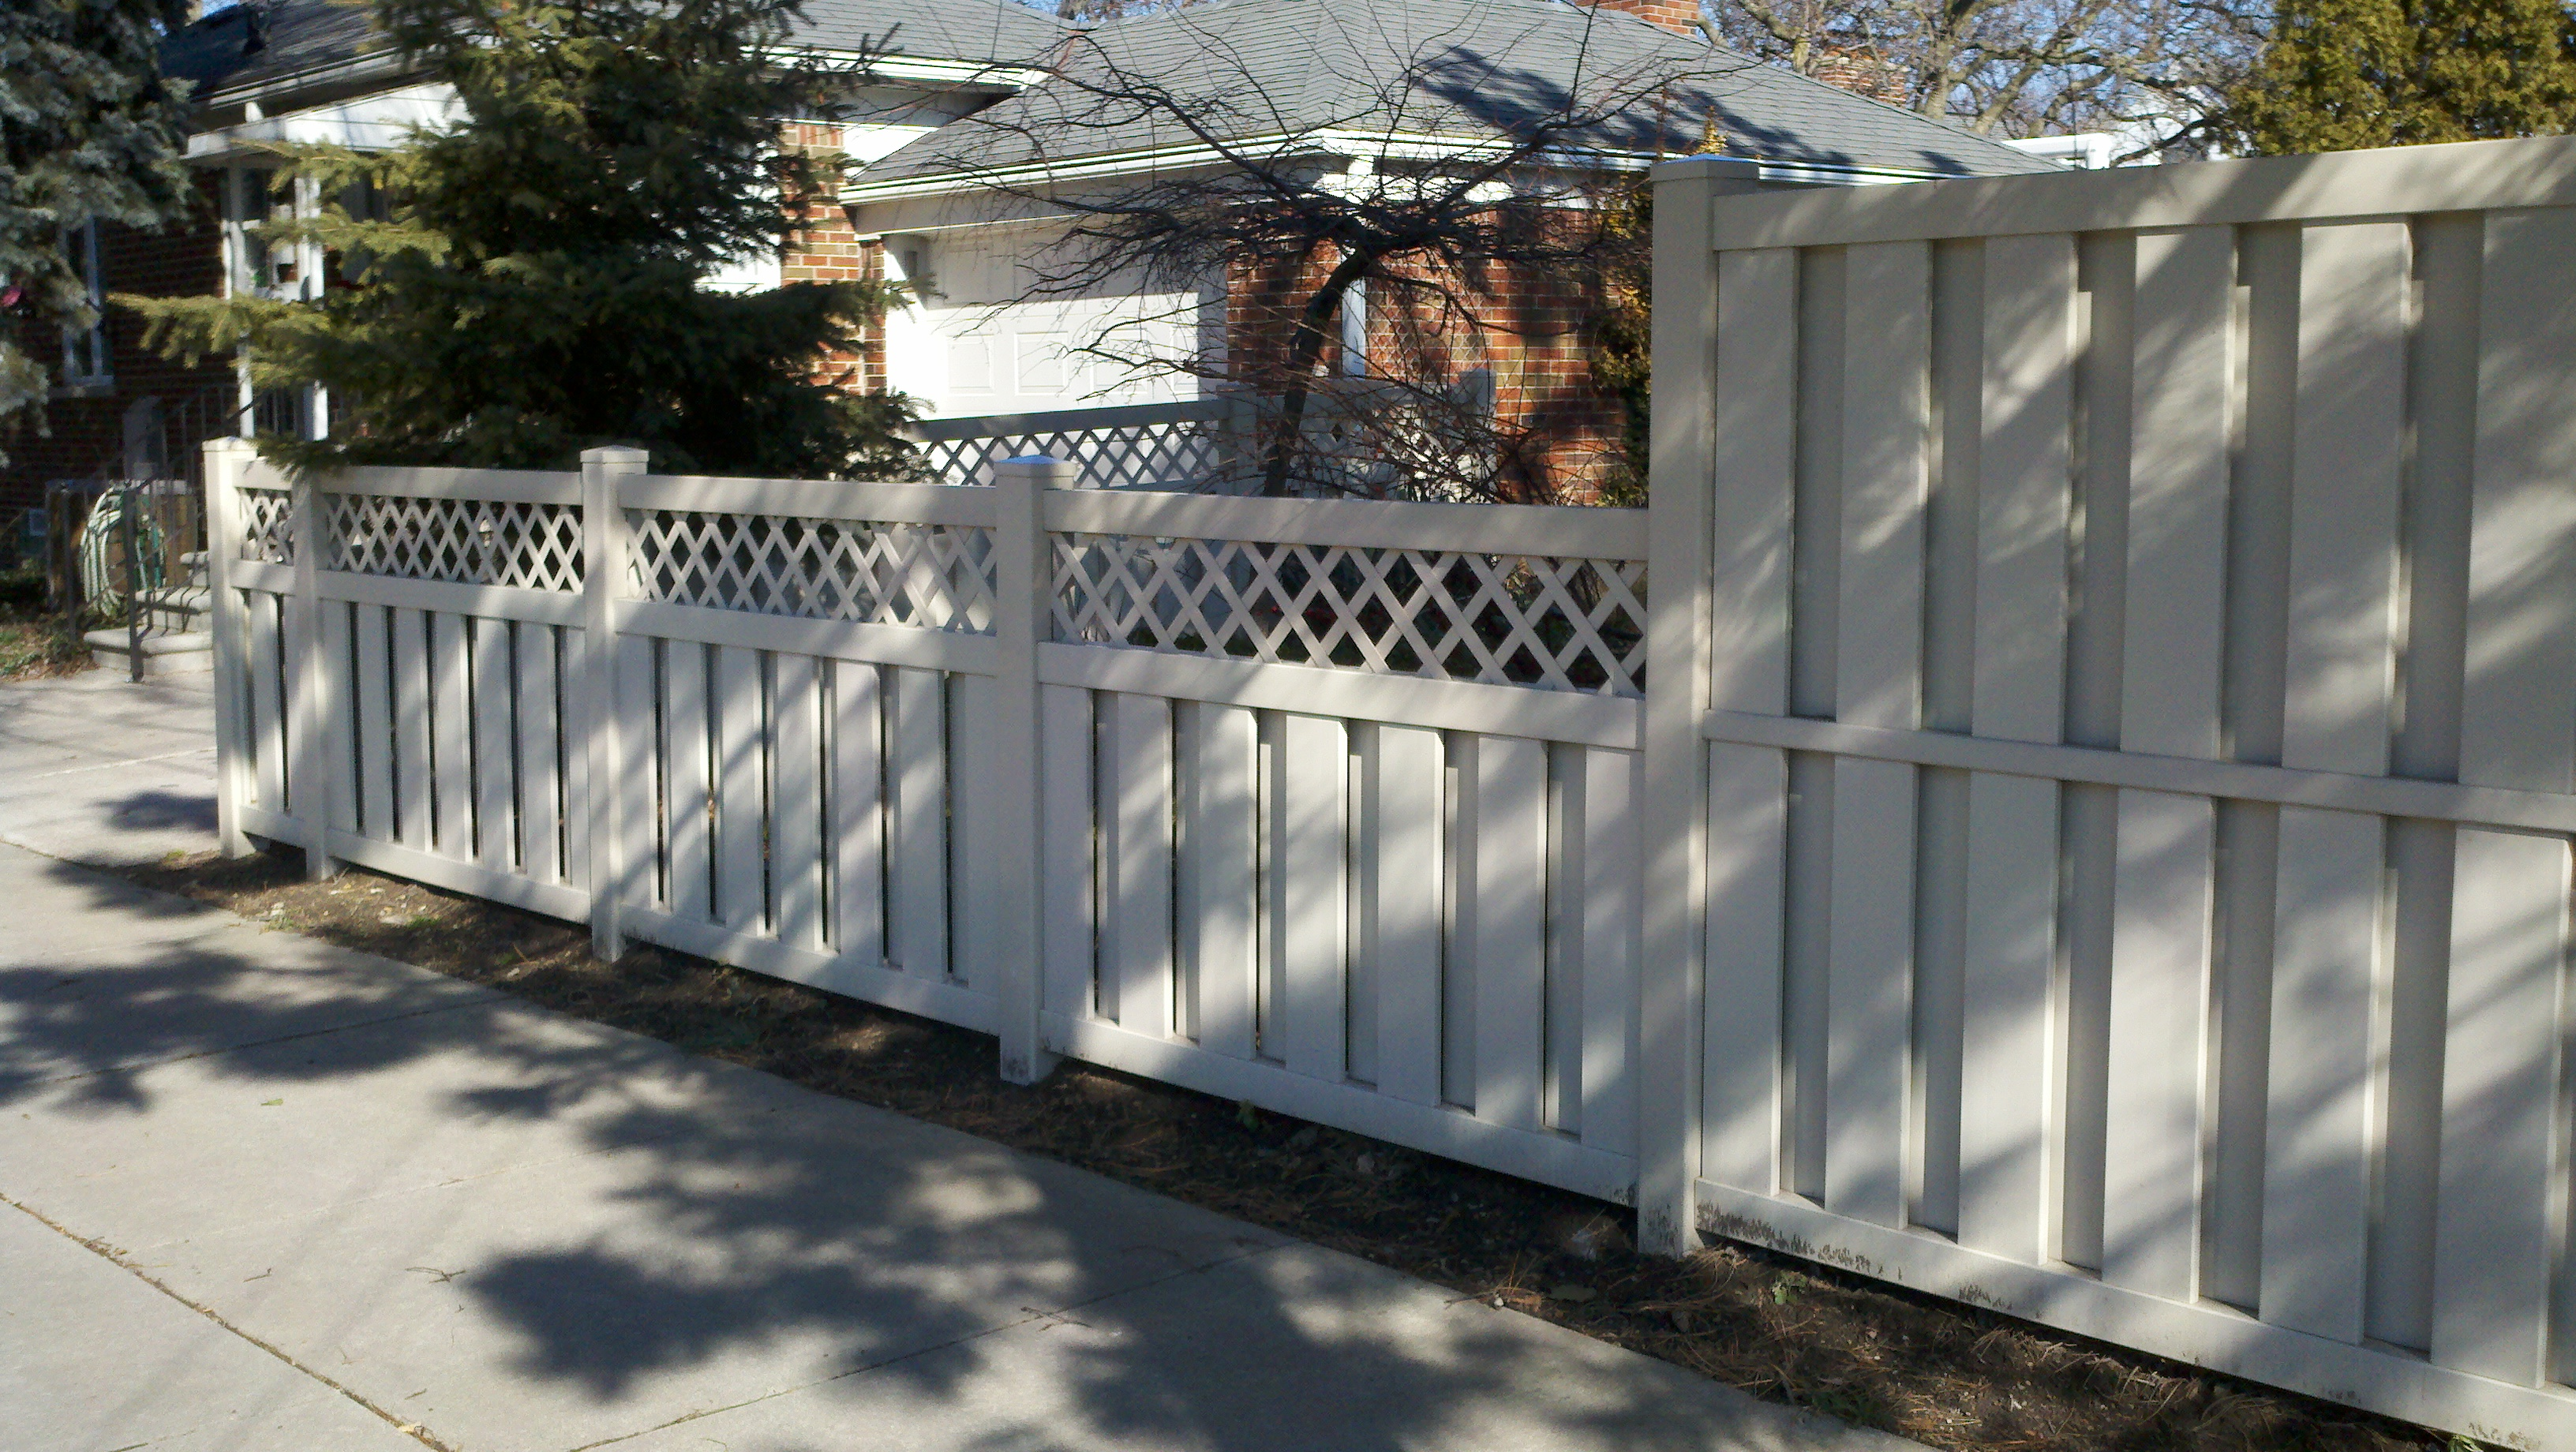 Shadow Box Fence with Lattice Top http://troyfence.com/pvc-fence/